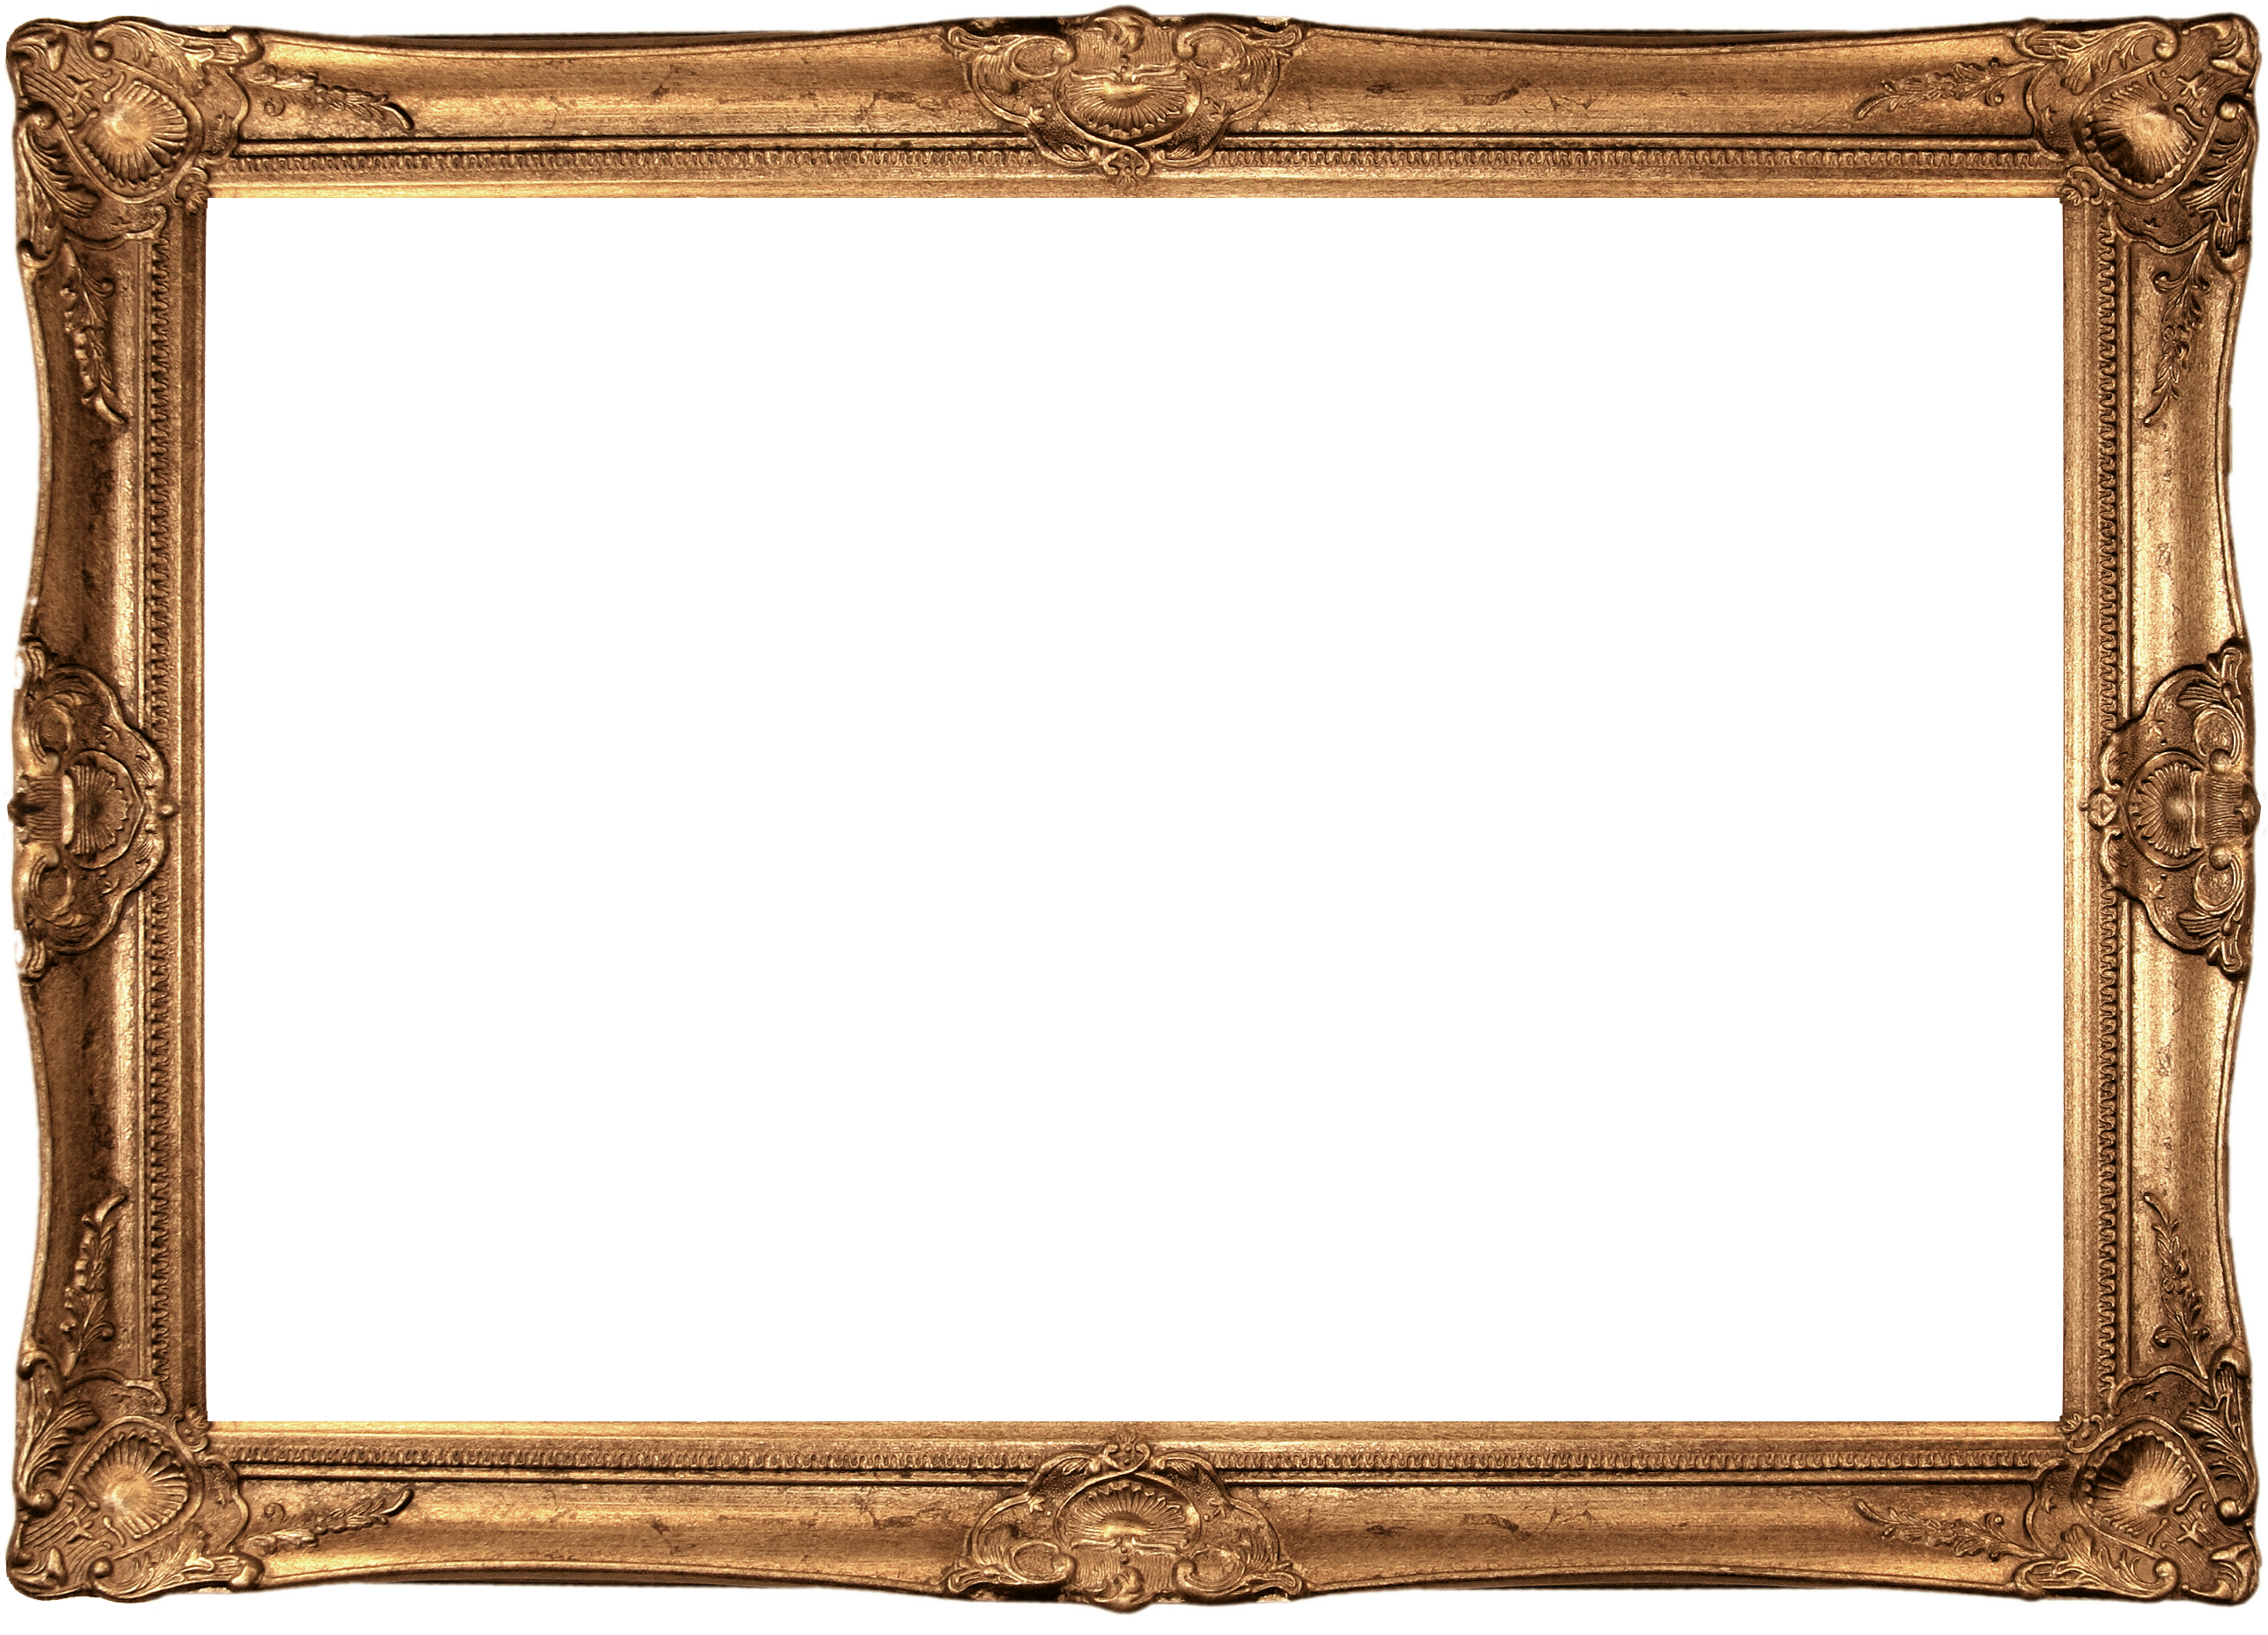 Renaissance Gold 1114 Frame For Wall Decoration Ideas 1114 Black